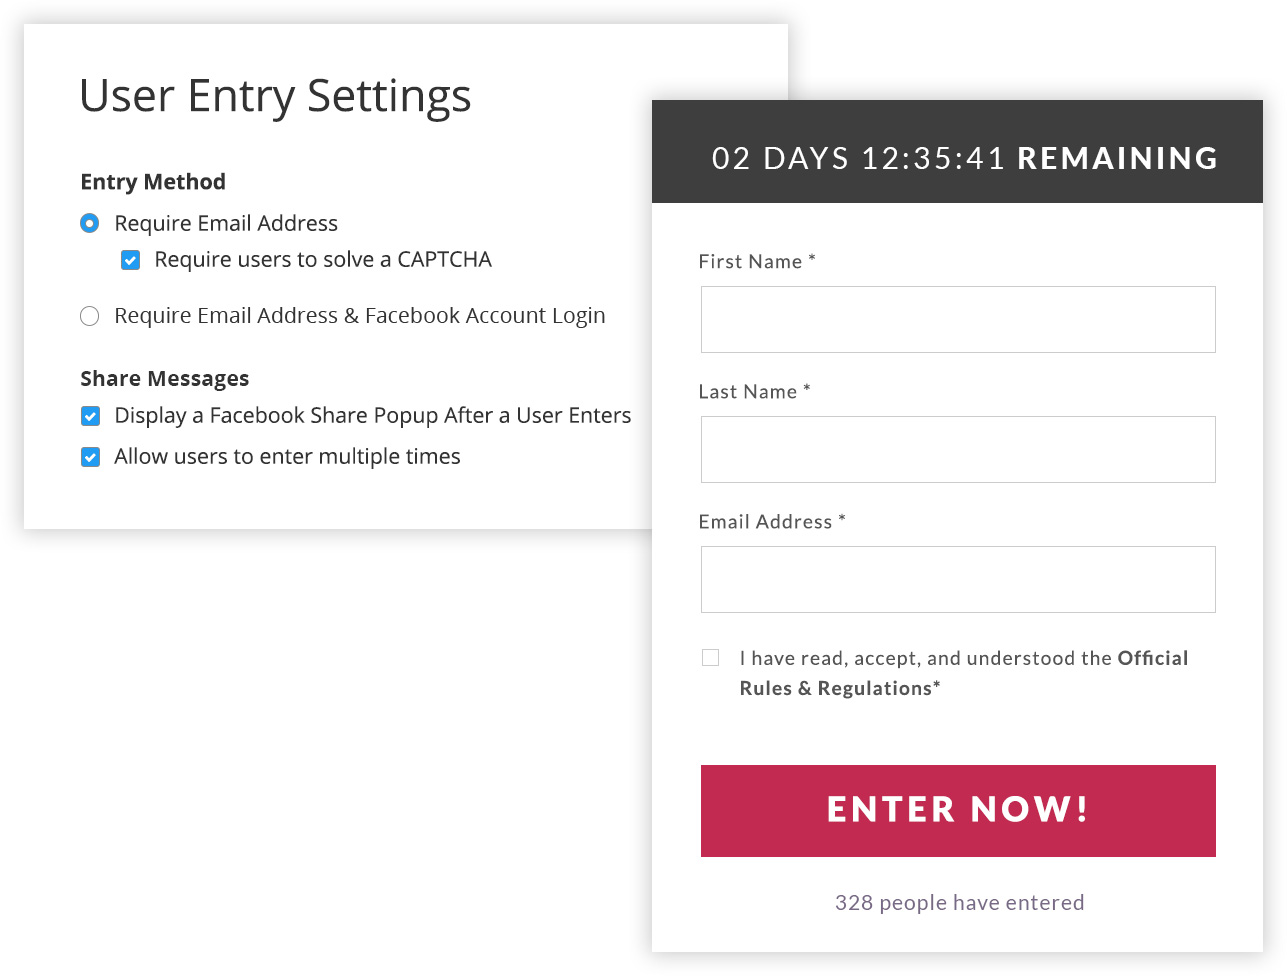 wishpond sweepstakes entry settings